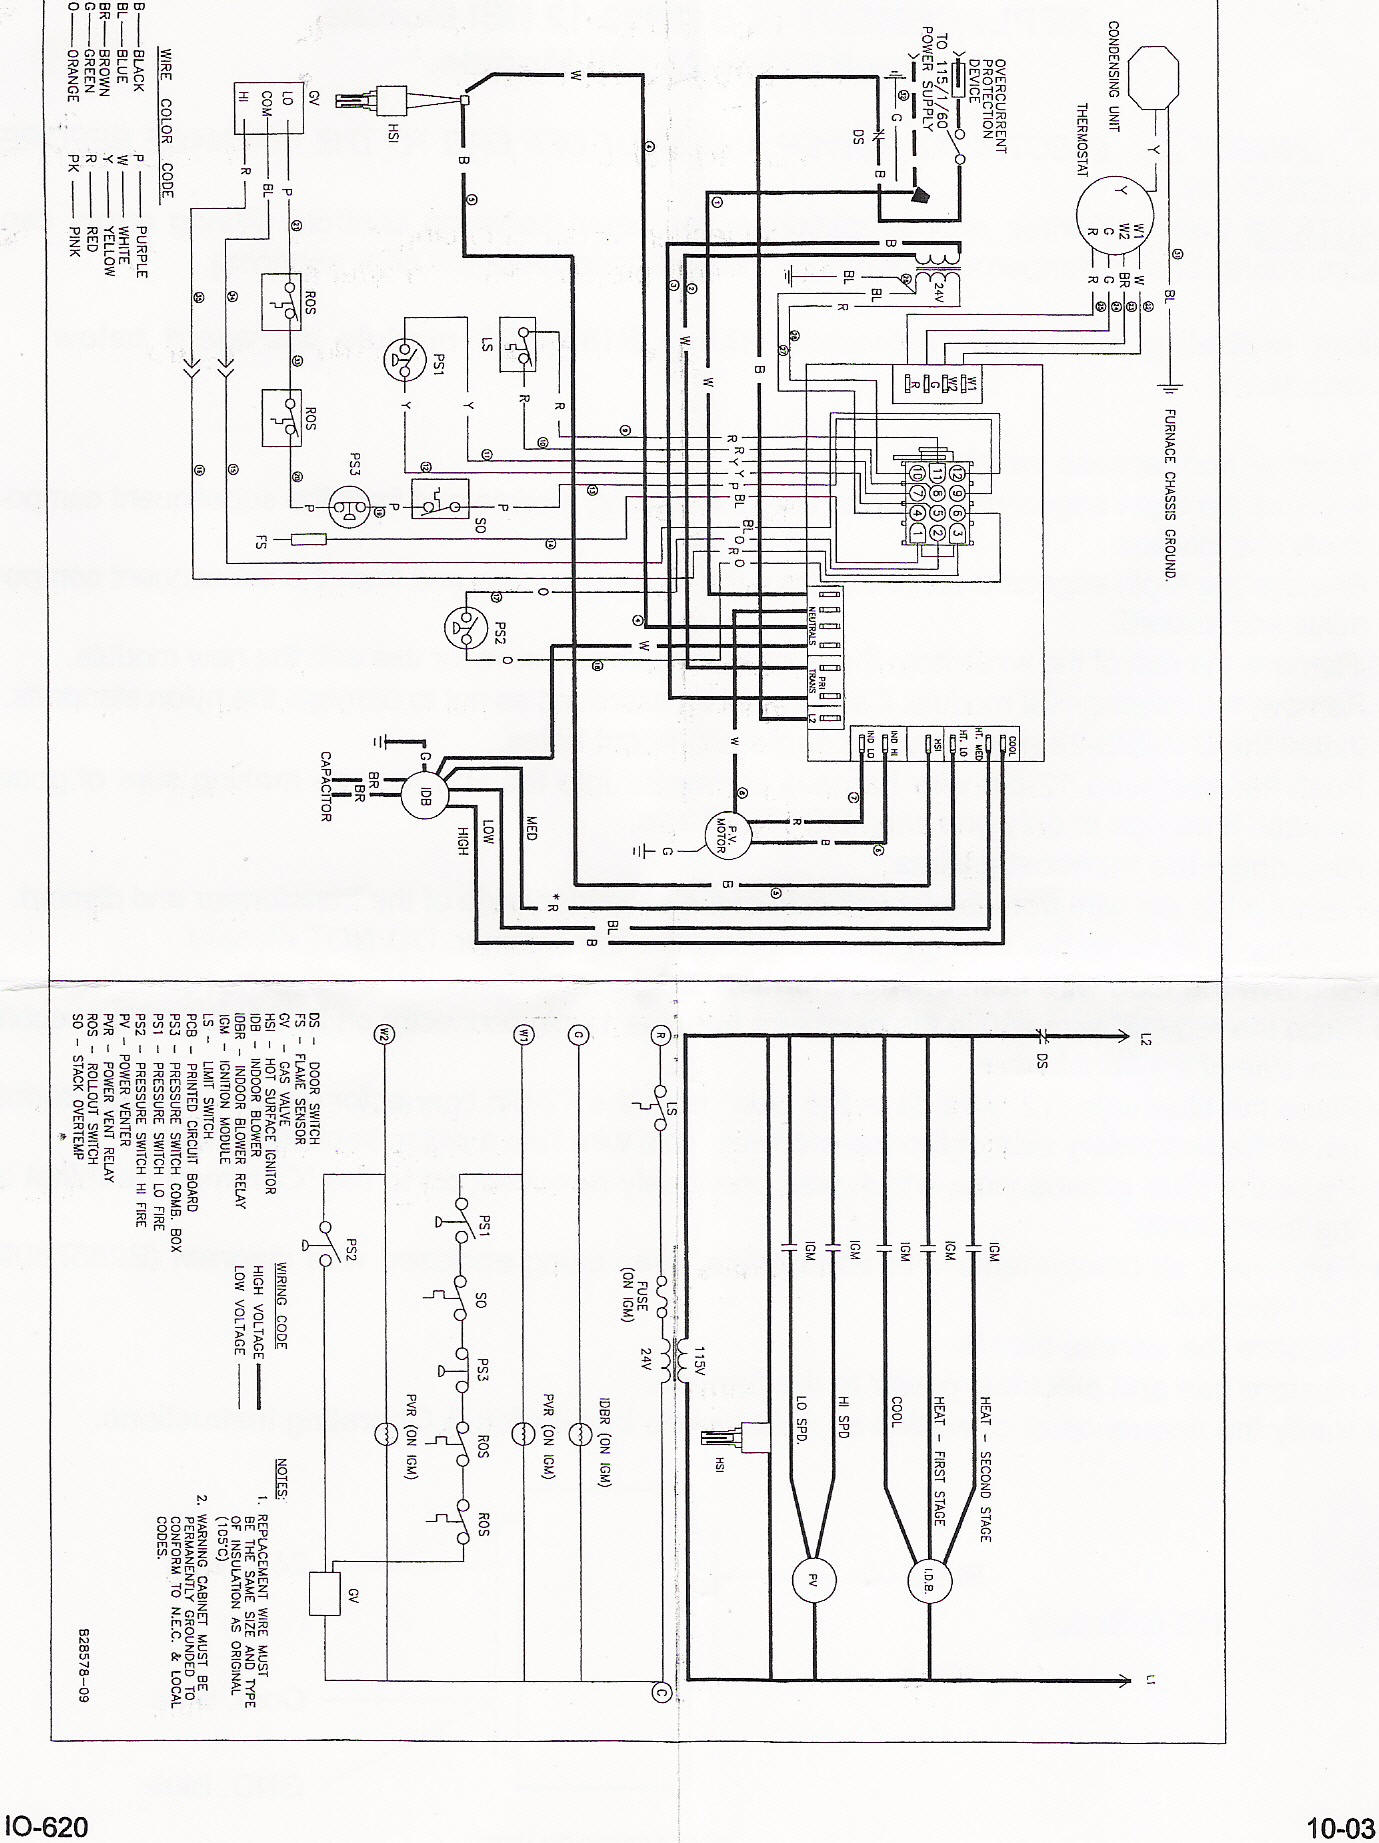 wiring diagram digital thermostat with Goodman Board B18099 23 on Modine Gas Heater Wiring Diagram in addition How To Build Cell Phone Controlled Door additionally Honeywell Wire Diagram further 544276 Aprilaire 600 W Wire Set Up as well Honeywell Aquastat Wiring Diagram Explained.